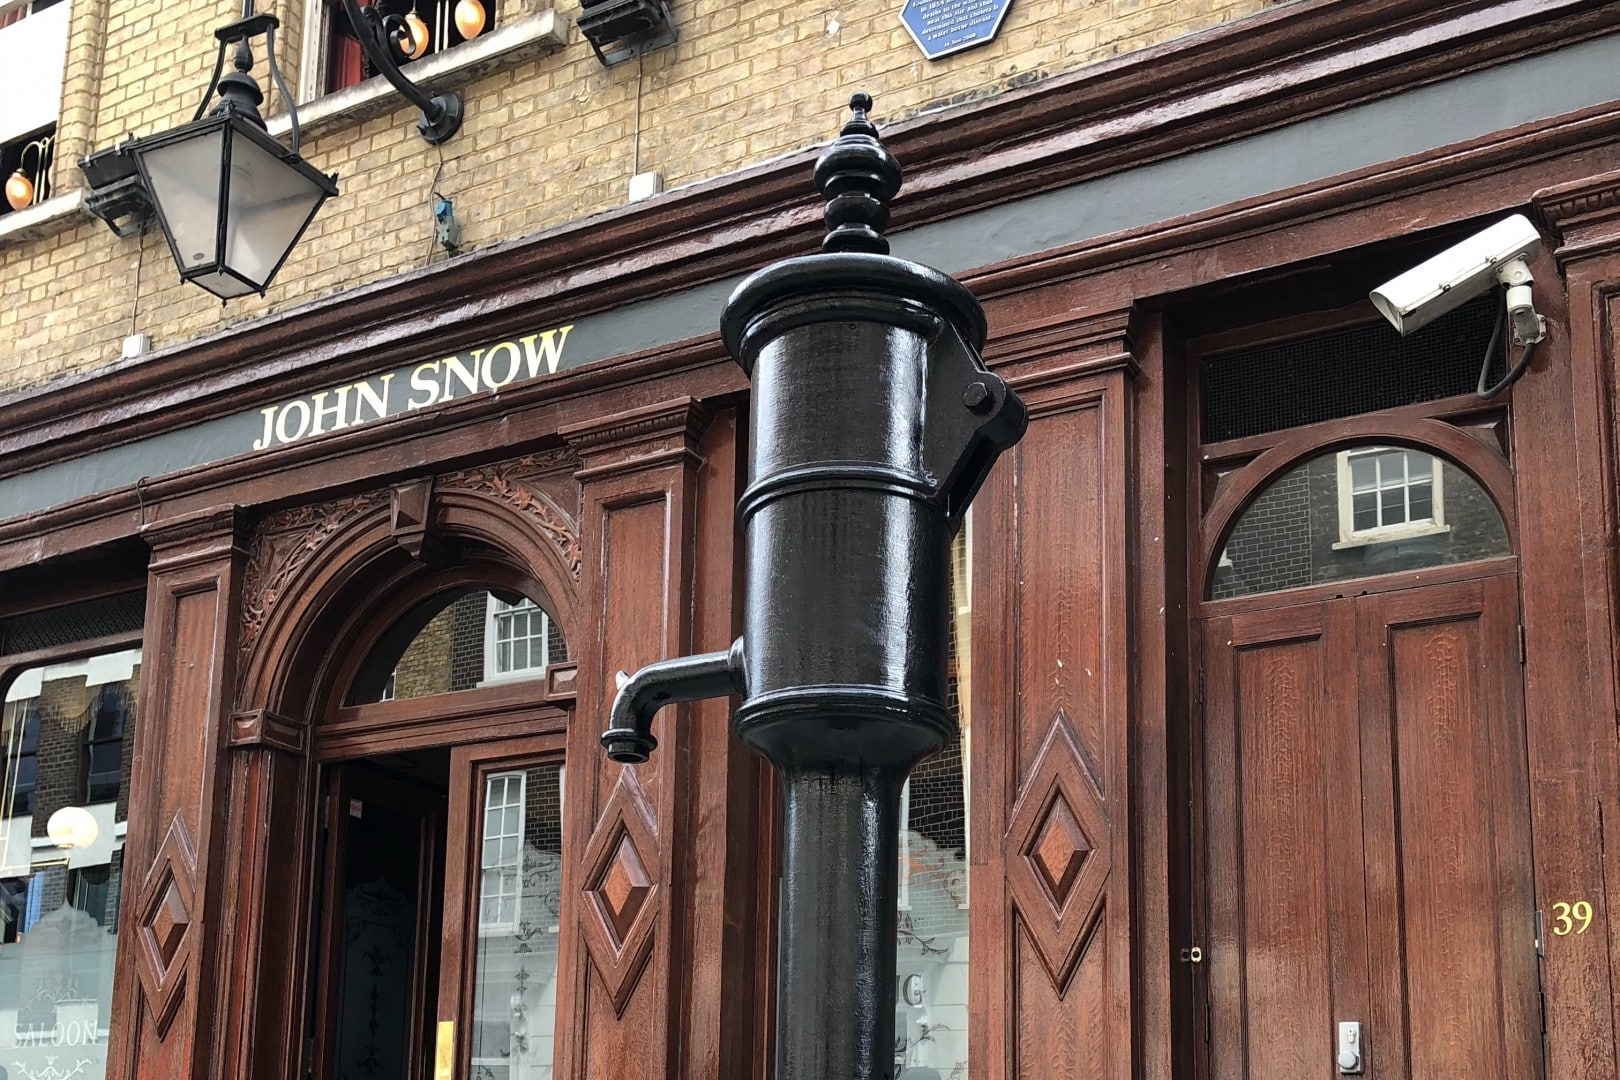 John Snow Water Pump